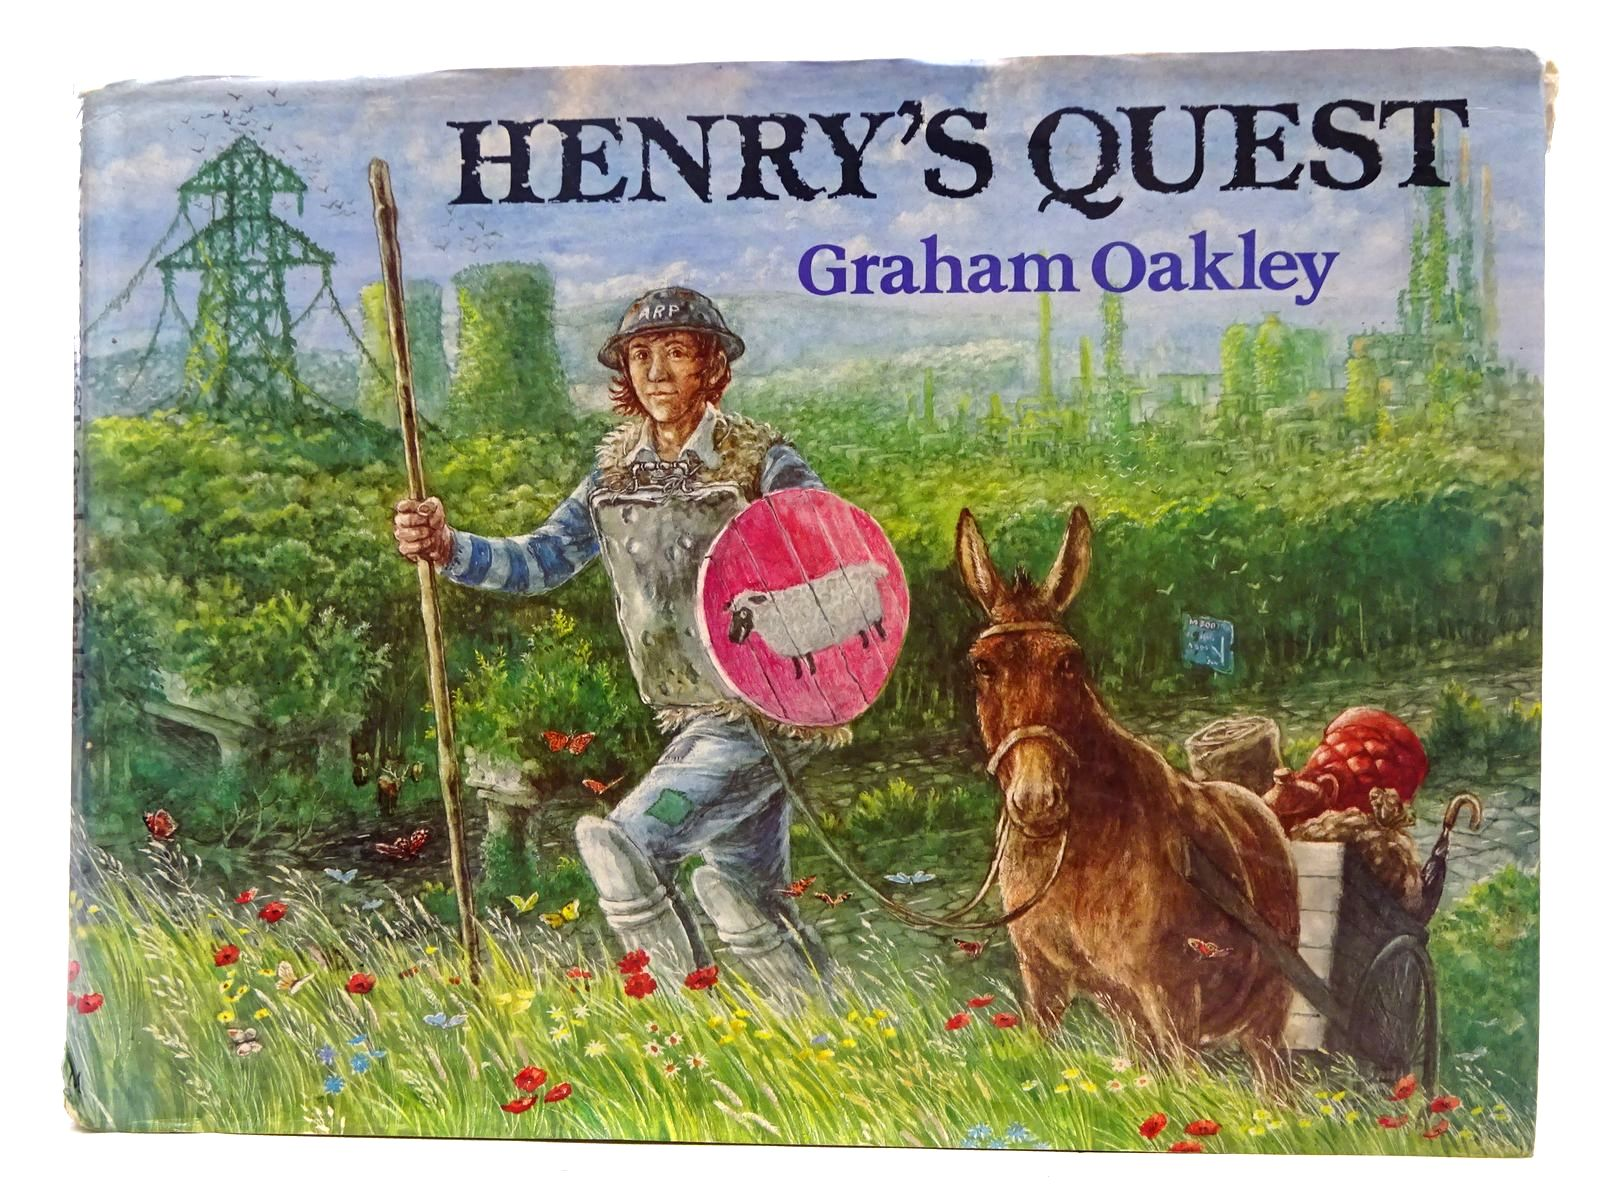 Photo of HENRY'S QUEST written by Oakley, Graham illustrated by Oakley, Graham published by Macmillan Children's Books (STOCK CODE: 2126542)  for sale by Stella & Rose's Books